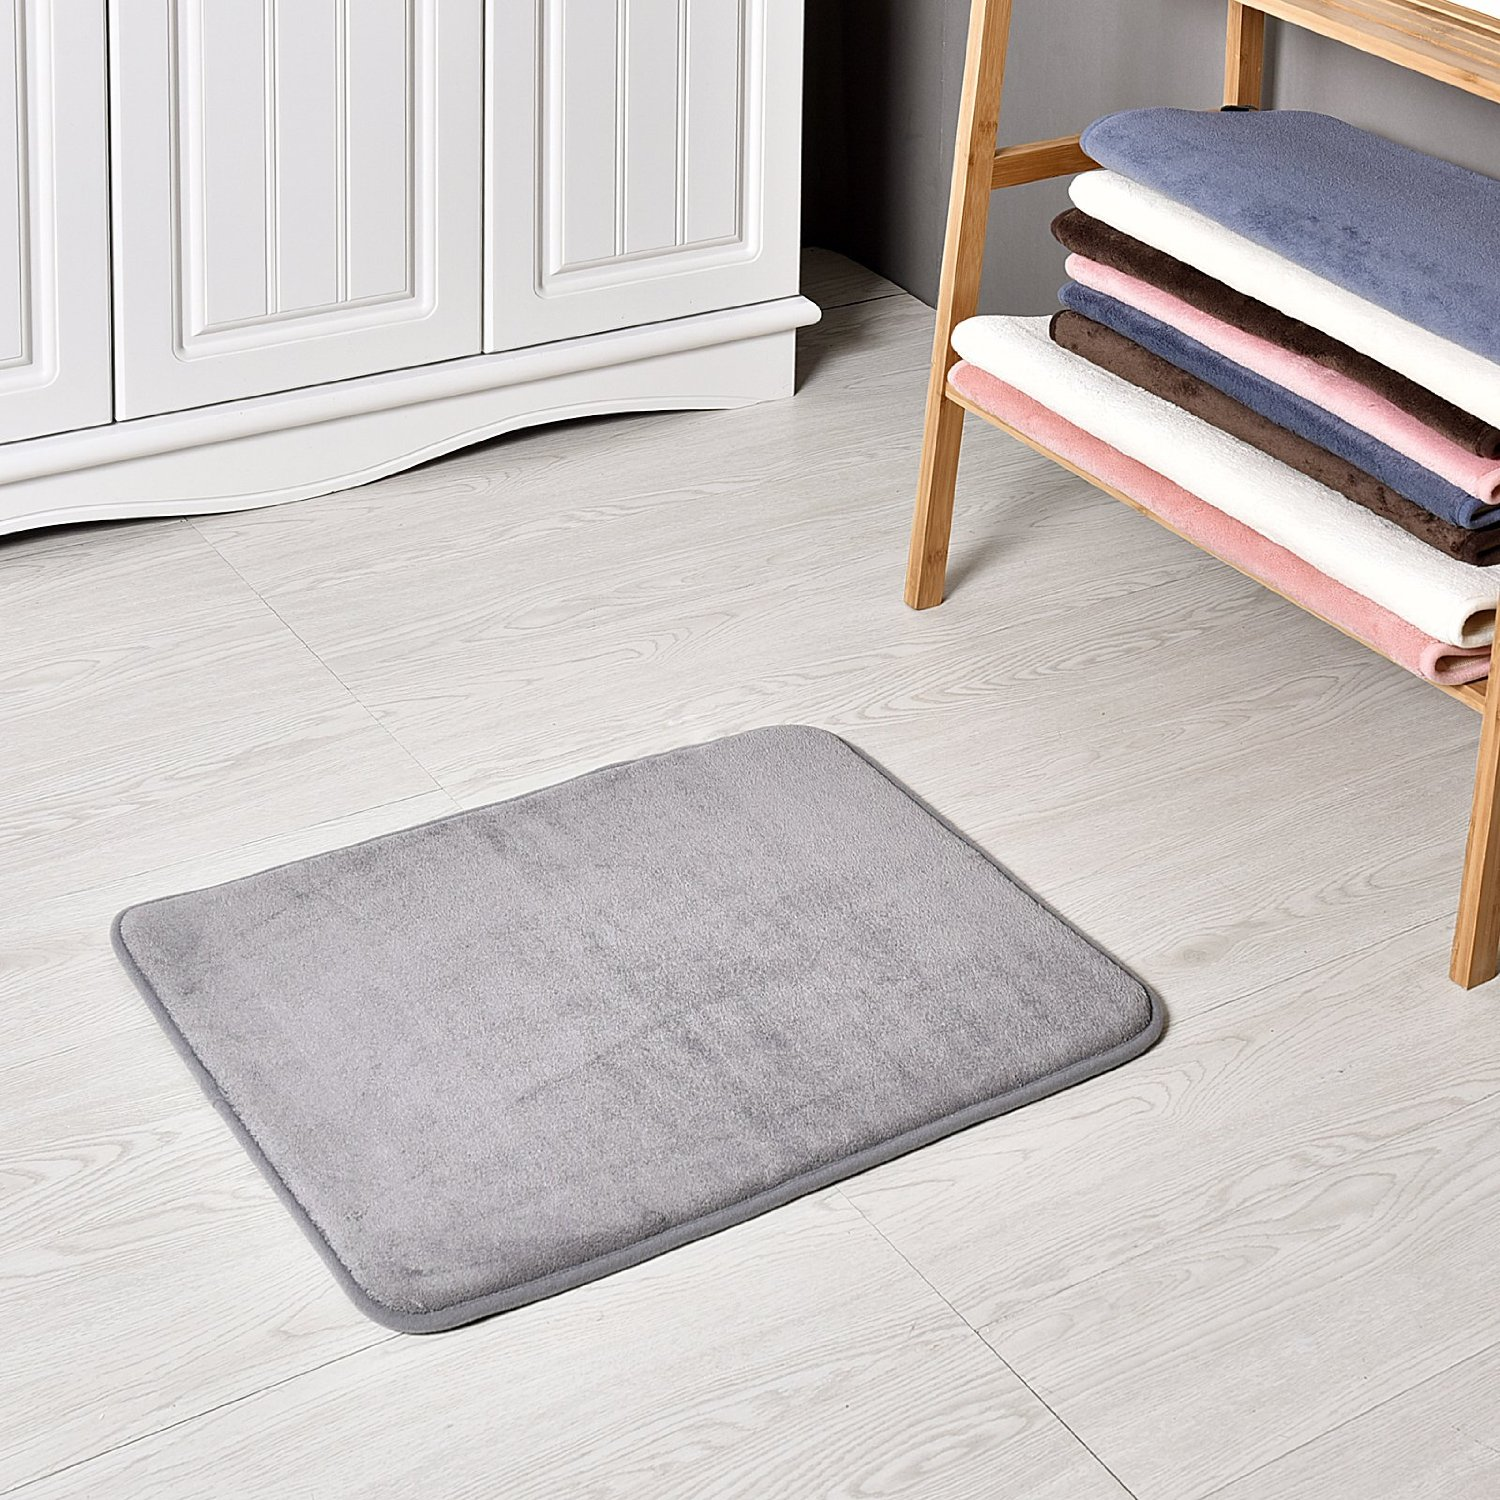 com home mats for inspiration the showers mat design floor anoceanview magazine on heated choosing bathroom bath